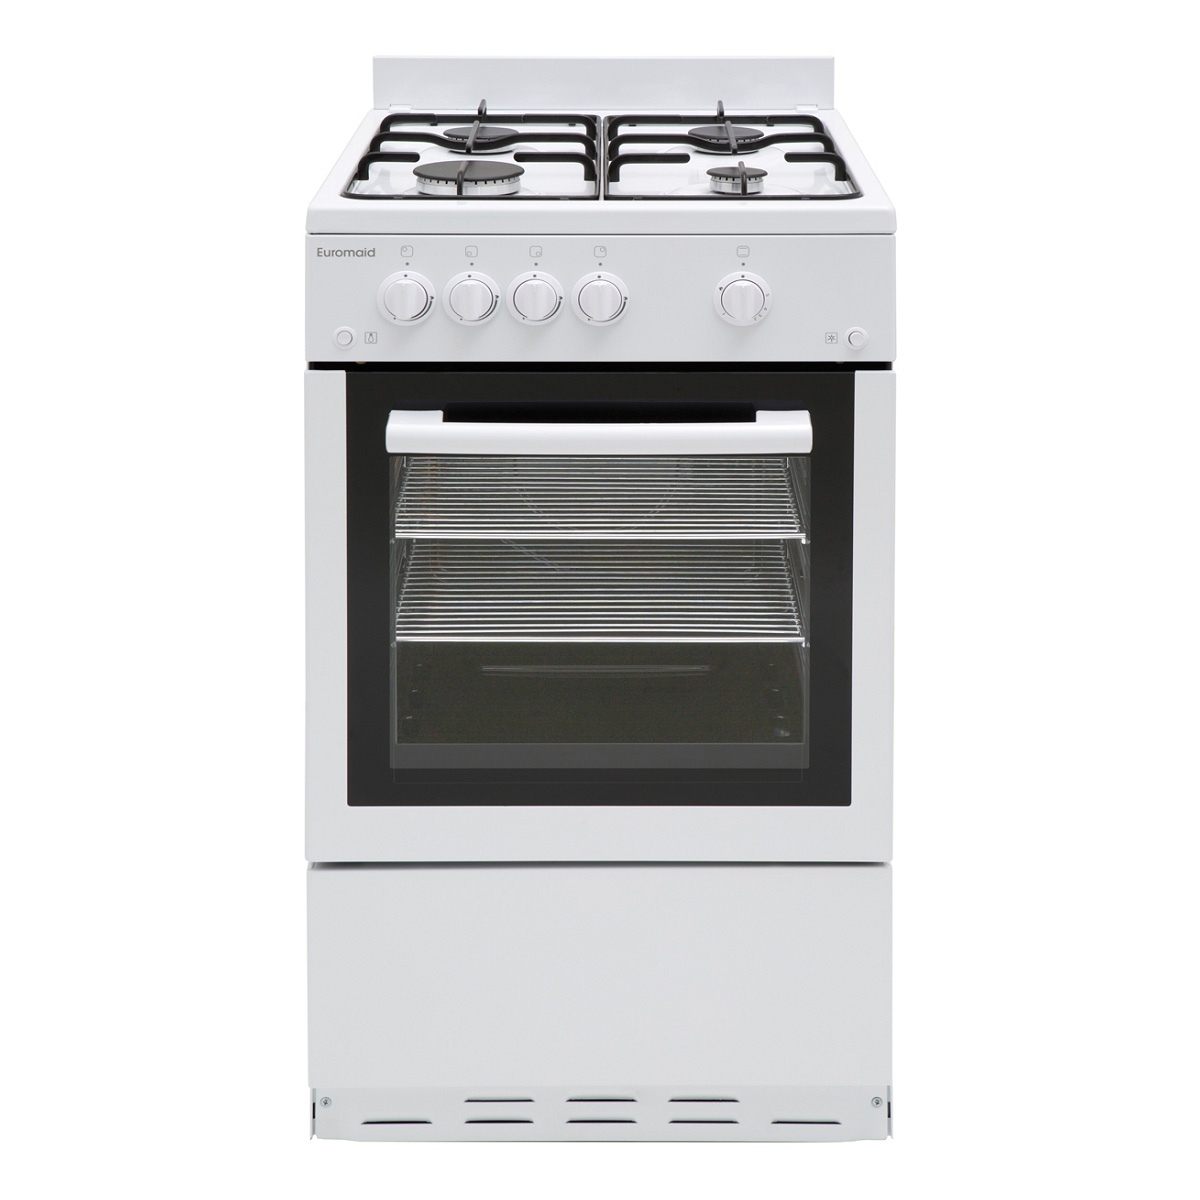 Euromaid GGFW50LPG Freestanding Gas Oven/Stove